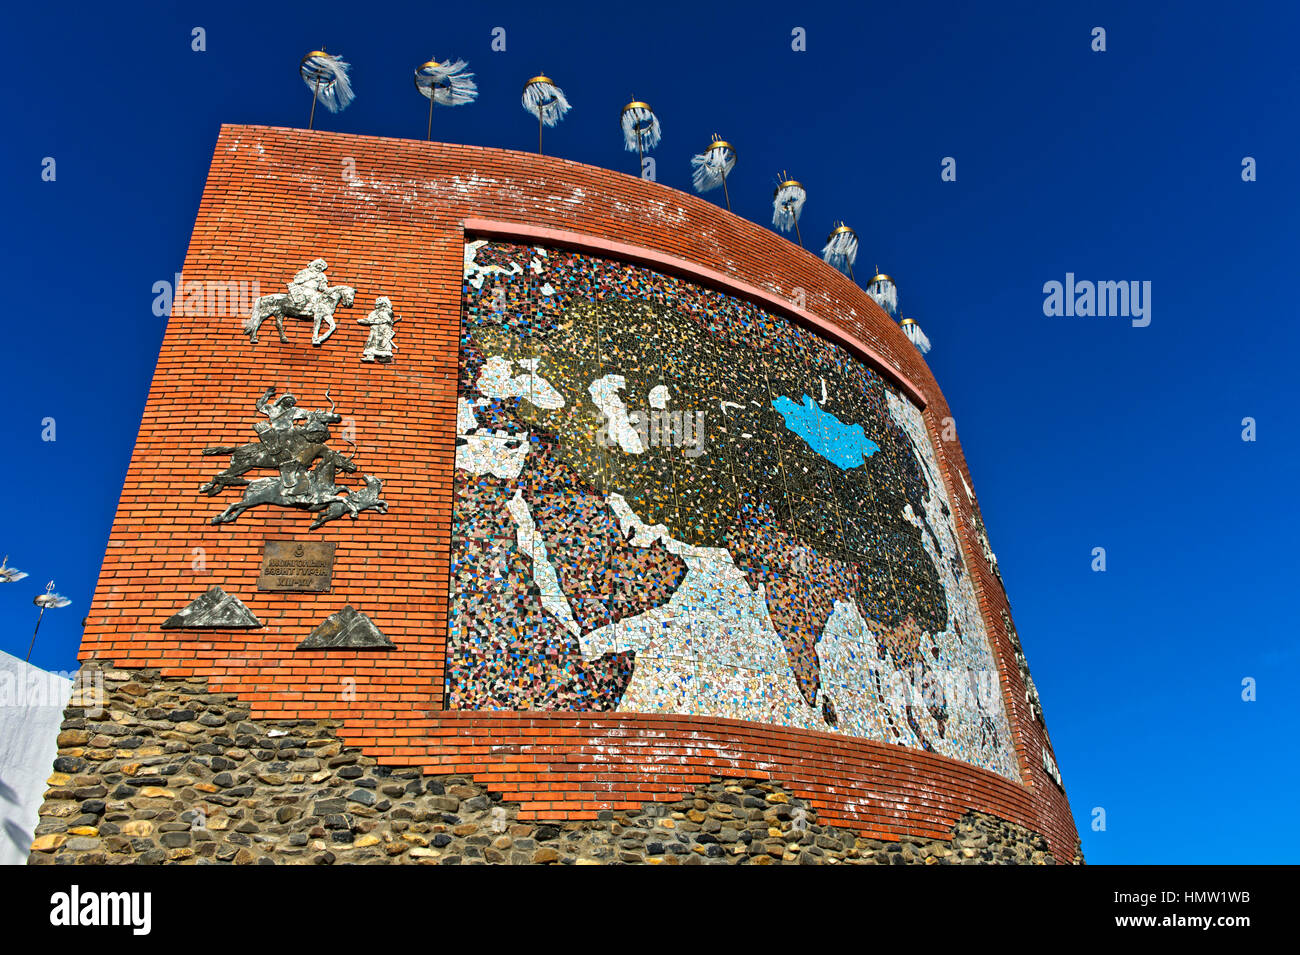 Great Imperial Map Monument, Kharkhorin, Mongolia - Stock Image